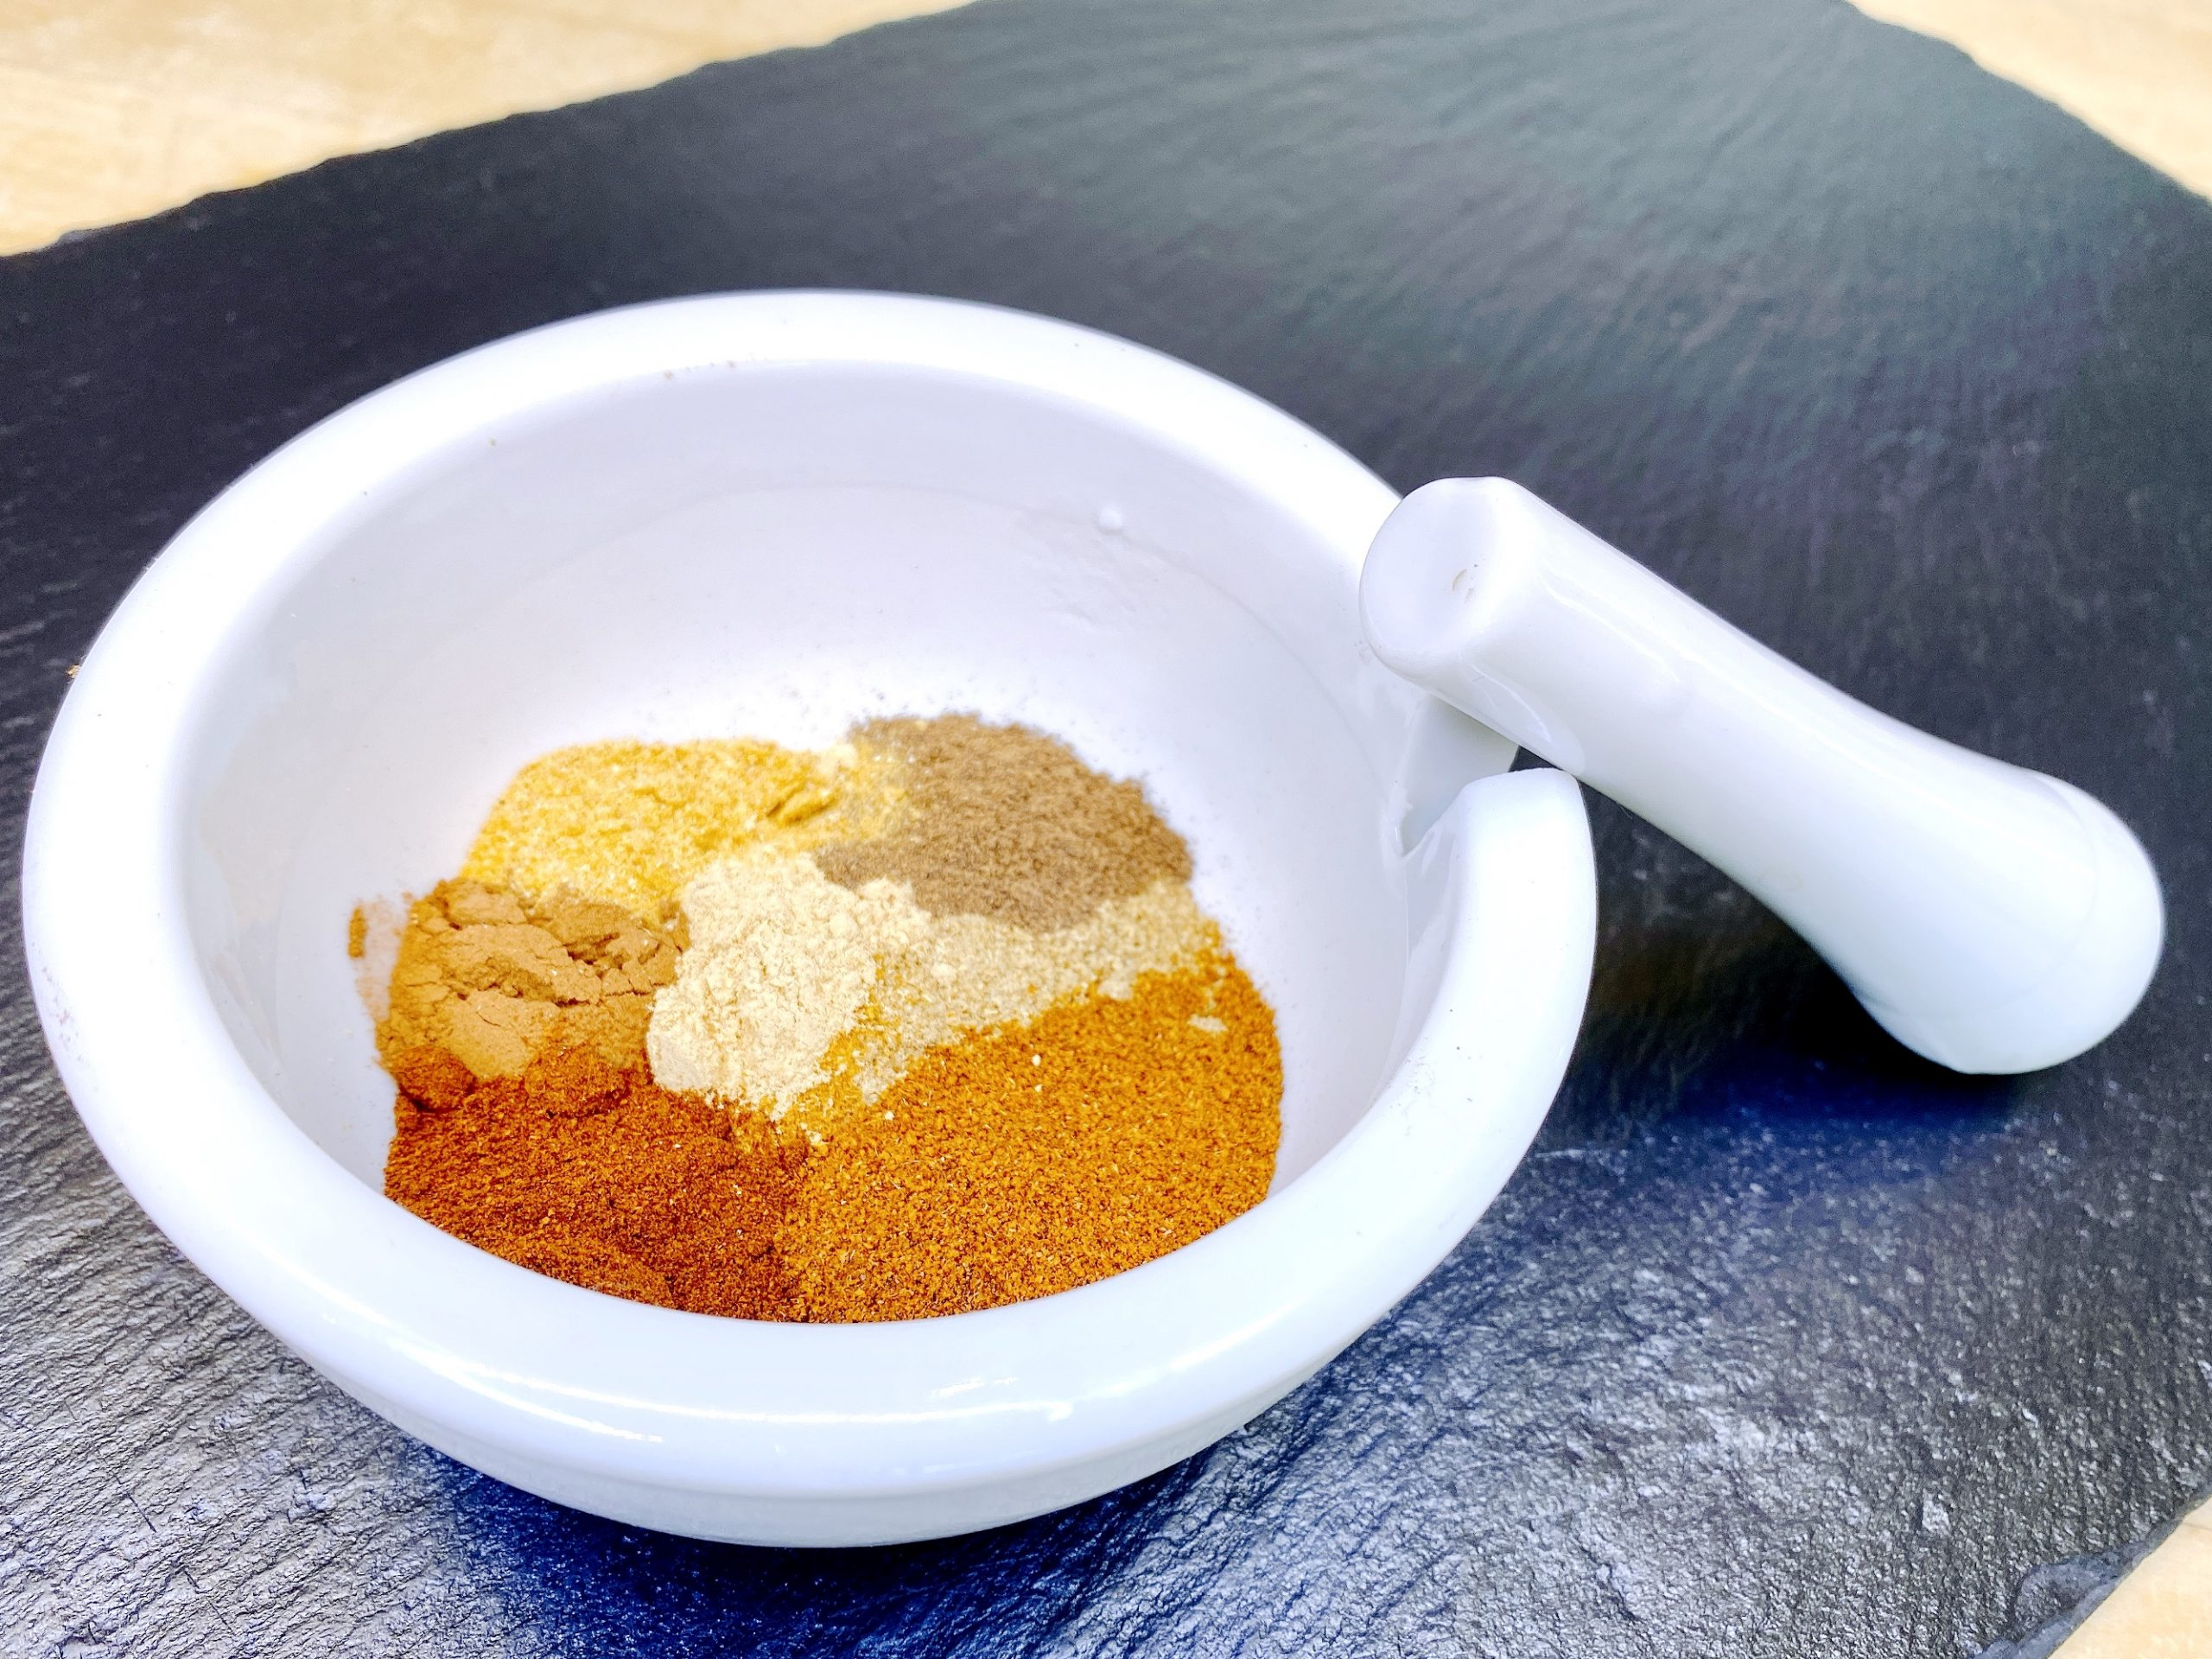 spices combined in a while mortar and pestle to make Moroccan Chermoula spice mix